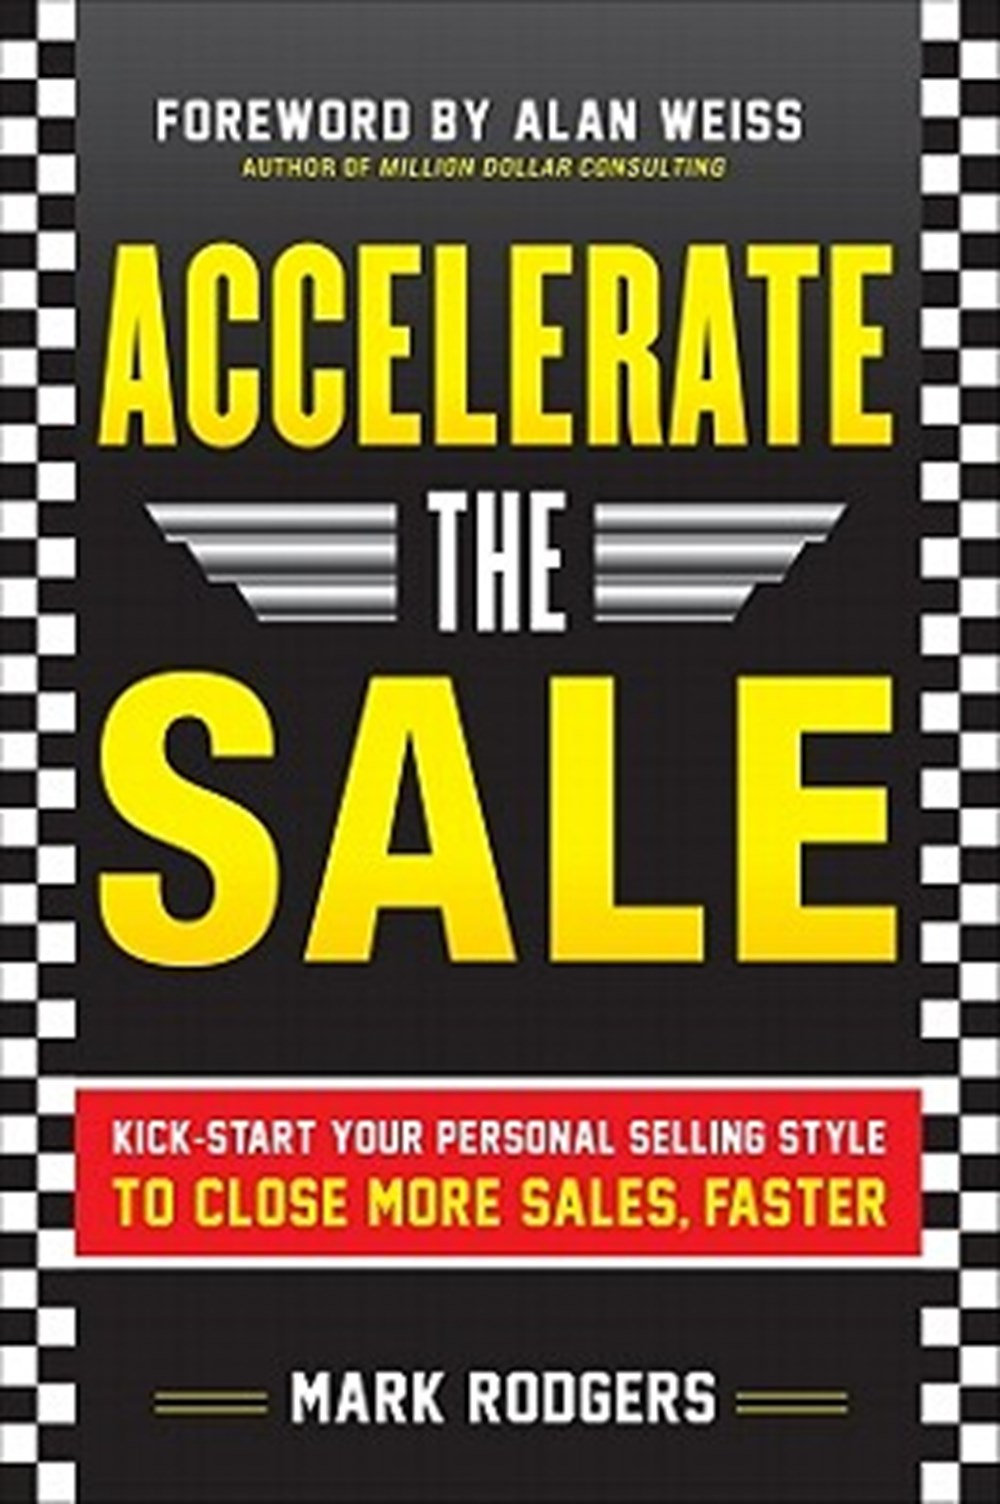 Accelerate the Sale Kick-Start Your Personal Selling Style to Close More Sales, Faster